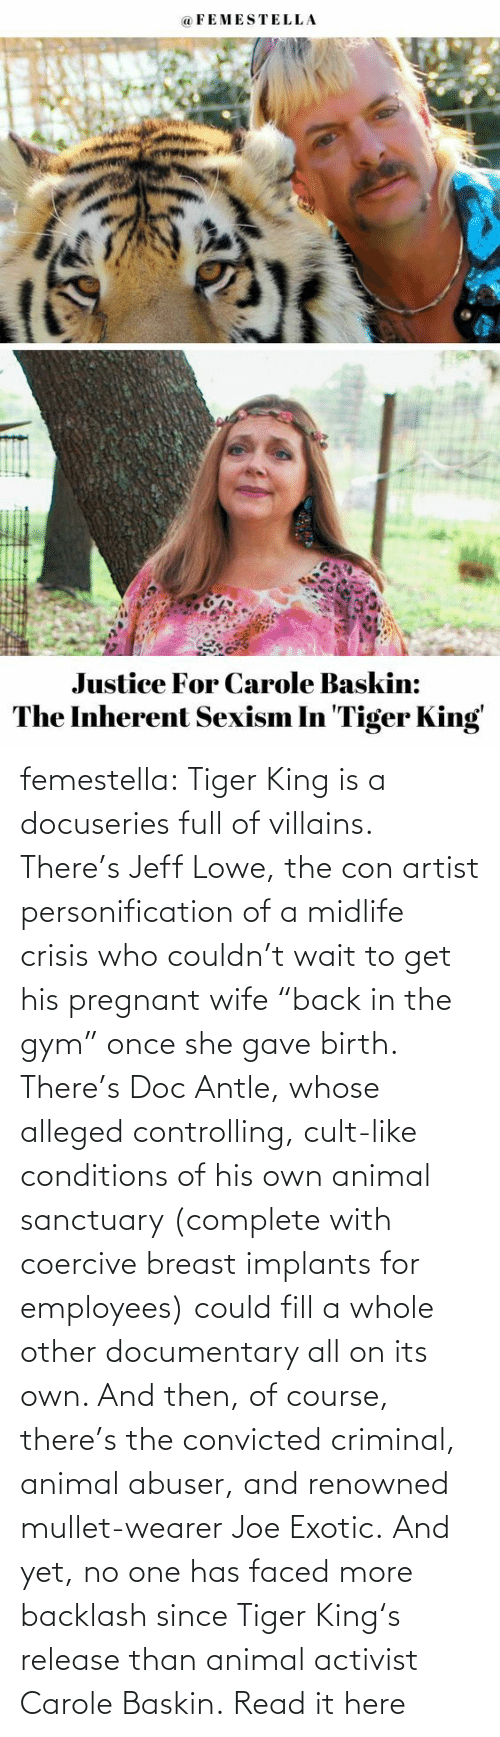 "con: femestella: Tiger King is a docuseries full of villains. There's Jeff Lowe, the con artist personification of a midlife crisis who couldn't wait to get his pregnant wife ""back in the gym"" once she gave birth. There's Doc Antle, whose alleged controlling, cult-like conditions of his own animal sanctuary (complete with coercive breast implants for employees) could fill a whole other documentary all on its own. And then, of course, there's the convicted criminal, animal abuser, and renowned mullet-wearer Joe Exotic. And yet, no one has faced more backlash since Tiger King's release than animal activist Carole Baskin. Read it here"